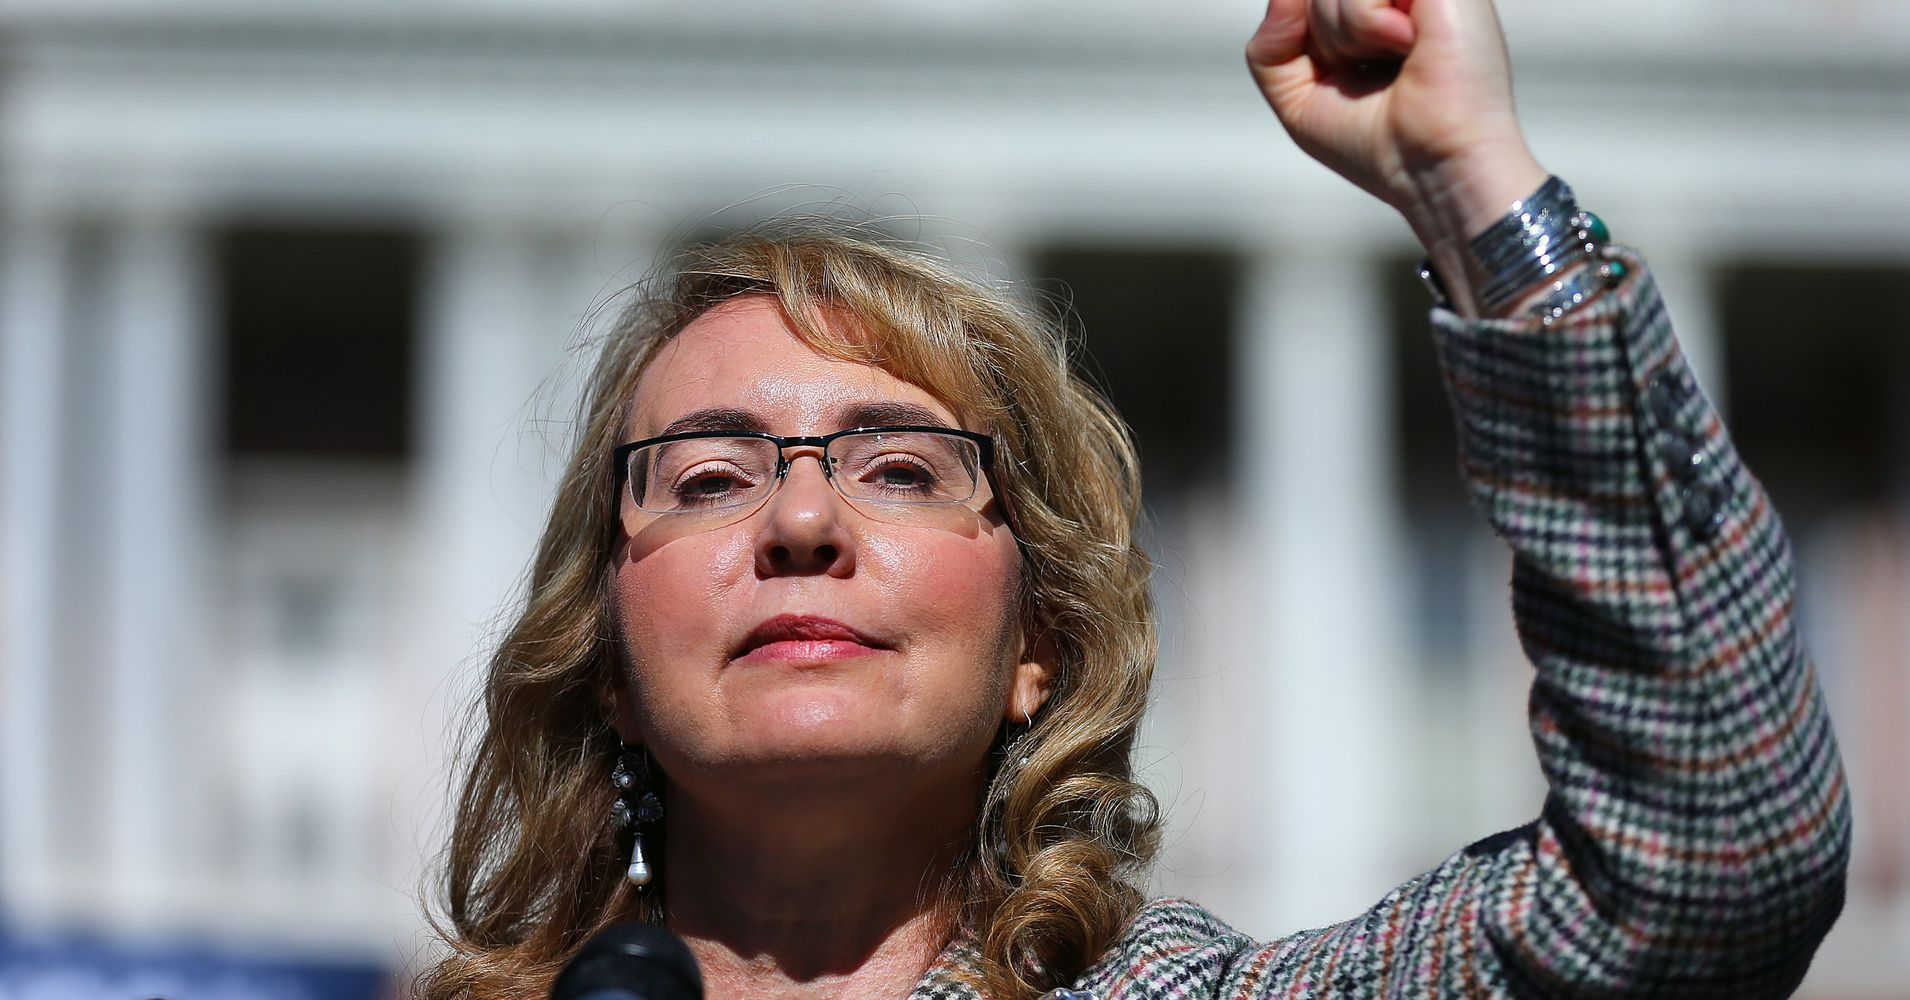 http://www.huffingtonpost.com/entry/gabrielle-giffords-navy-ship_us_593c2c38e4b024026879e6f0